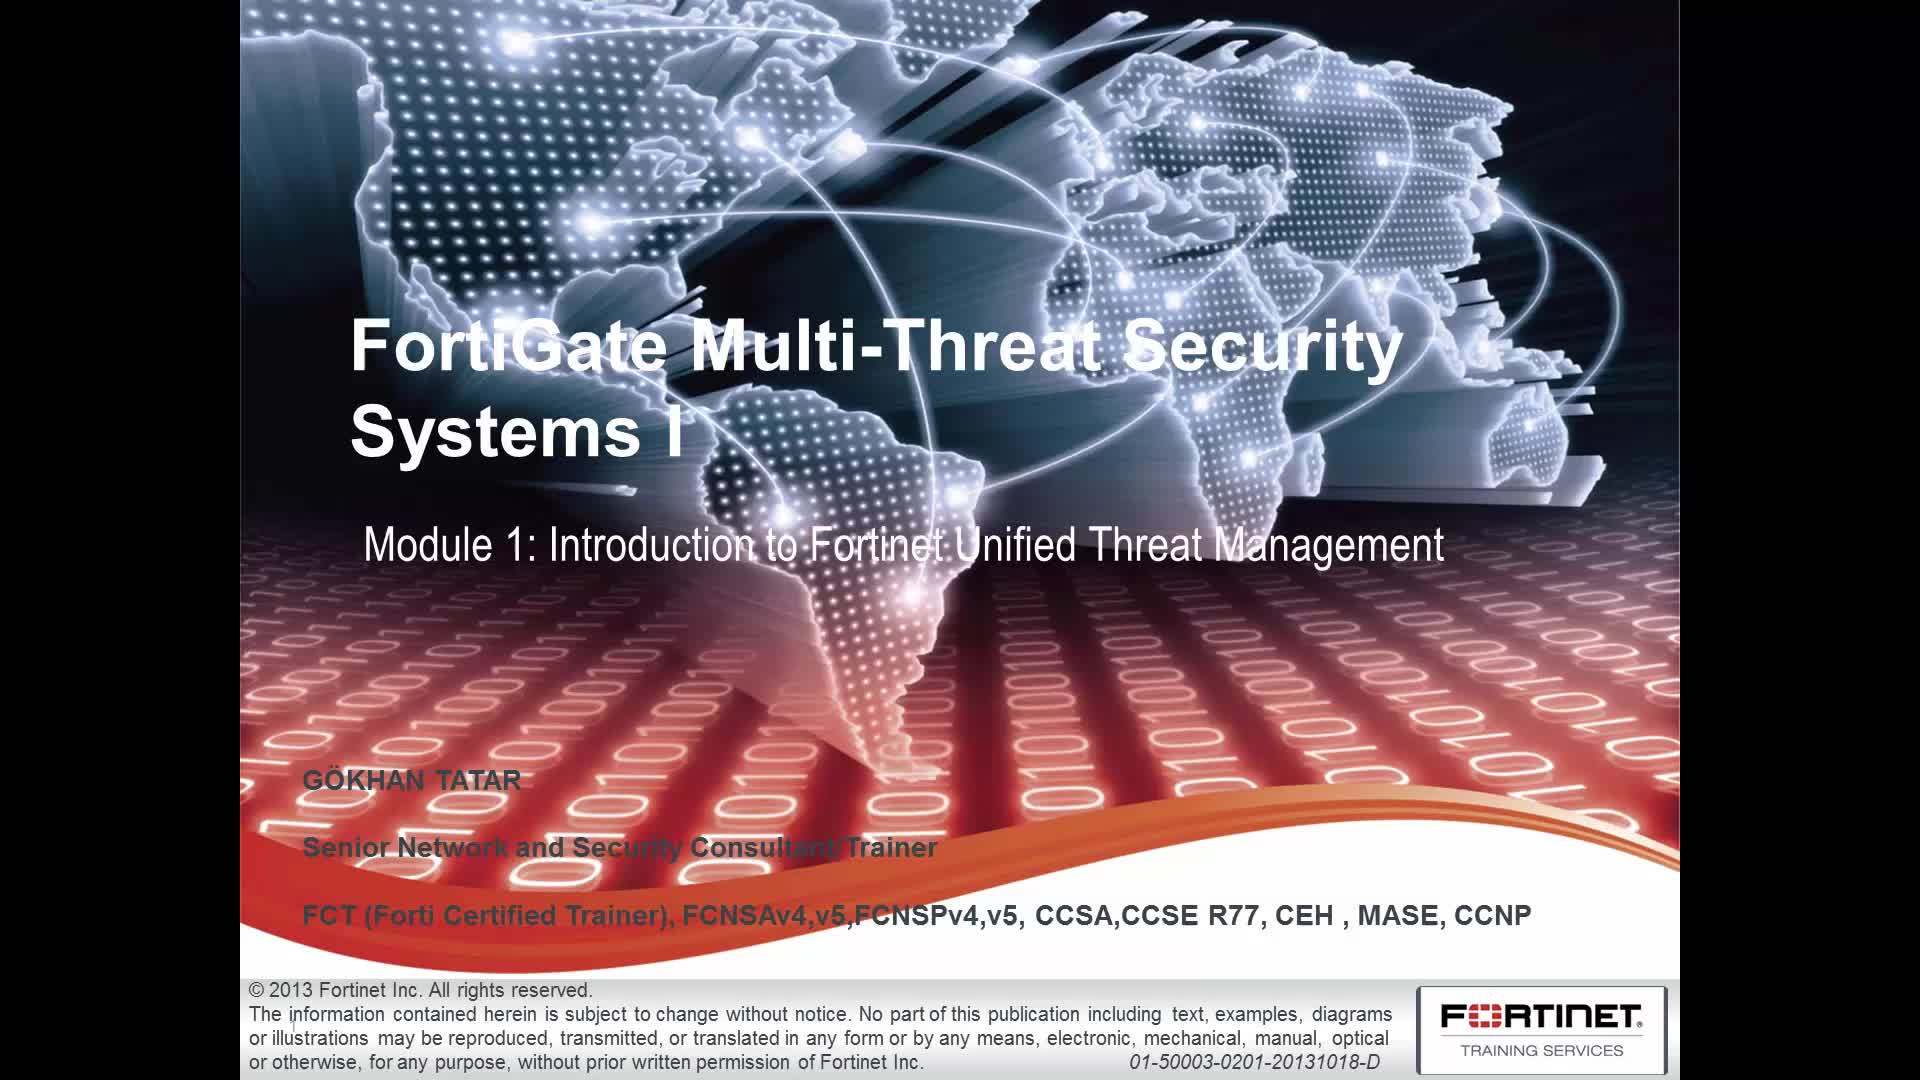 FortiGate Multi-Threat Security - Introduction to Fortinet Unified Threat Management